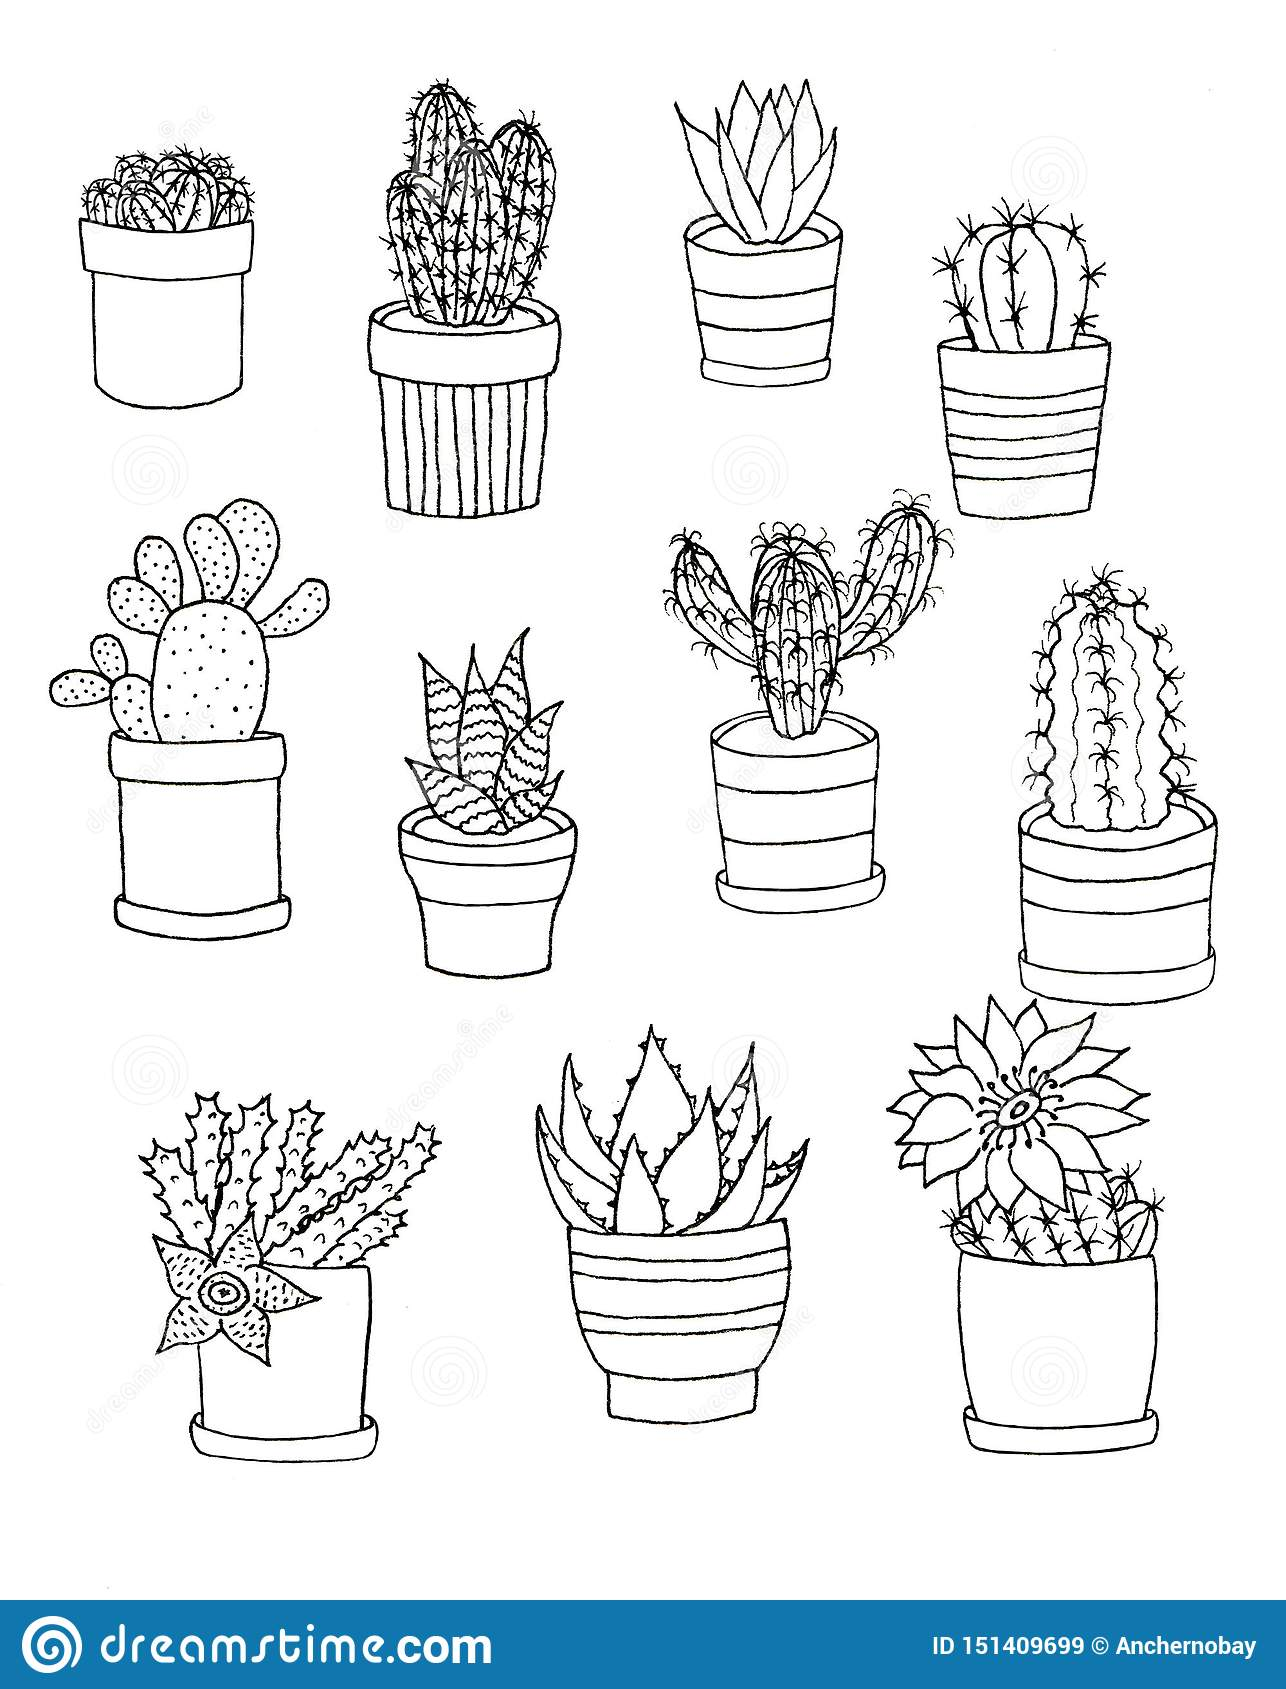 Hand drawn outline set of houseplants flower. Floral set cactus in pot isolated elements on white background